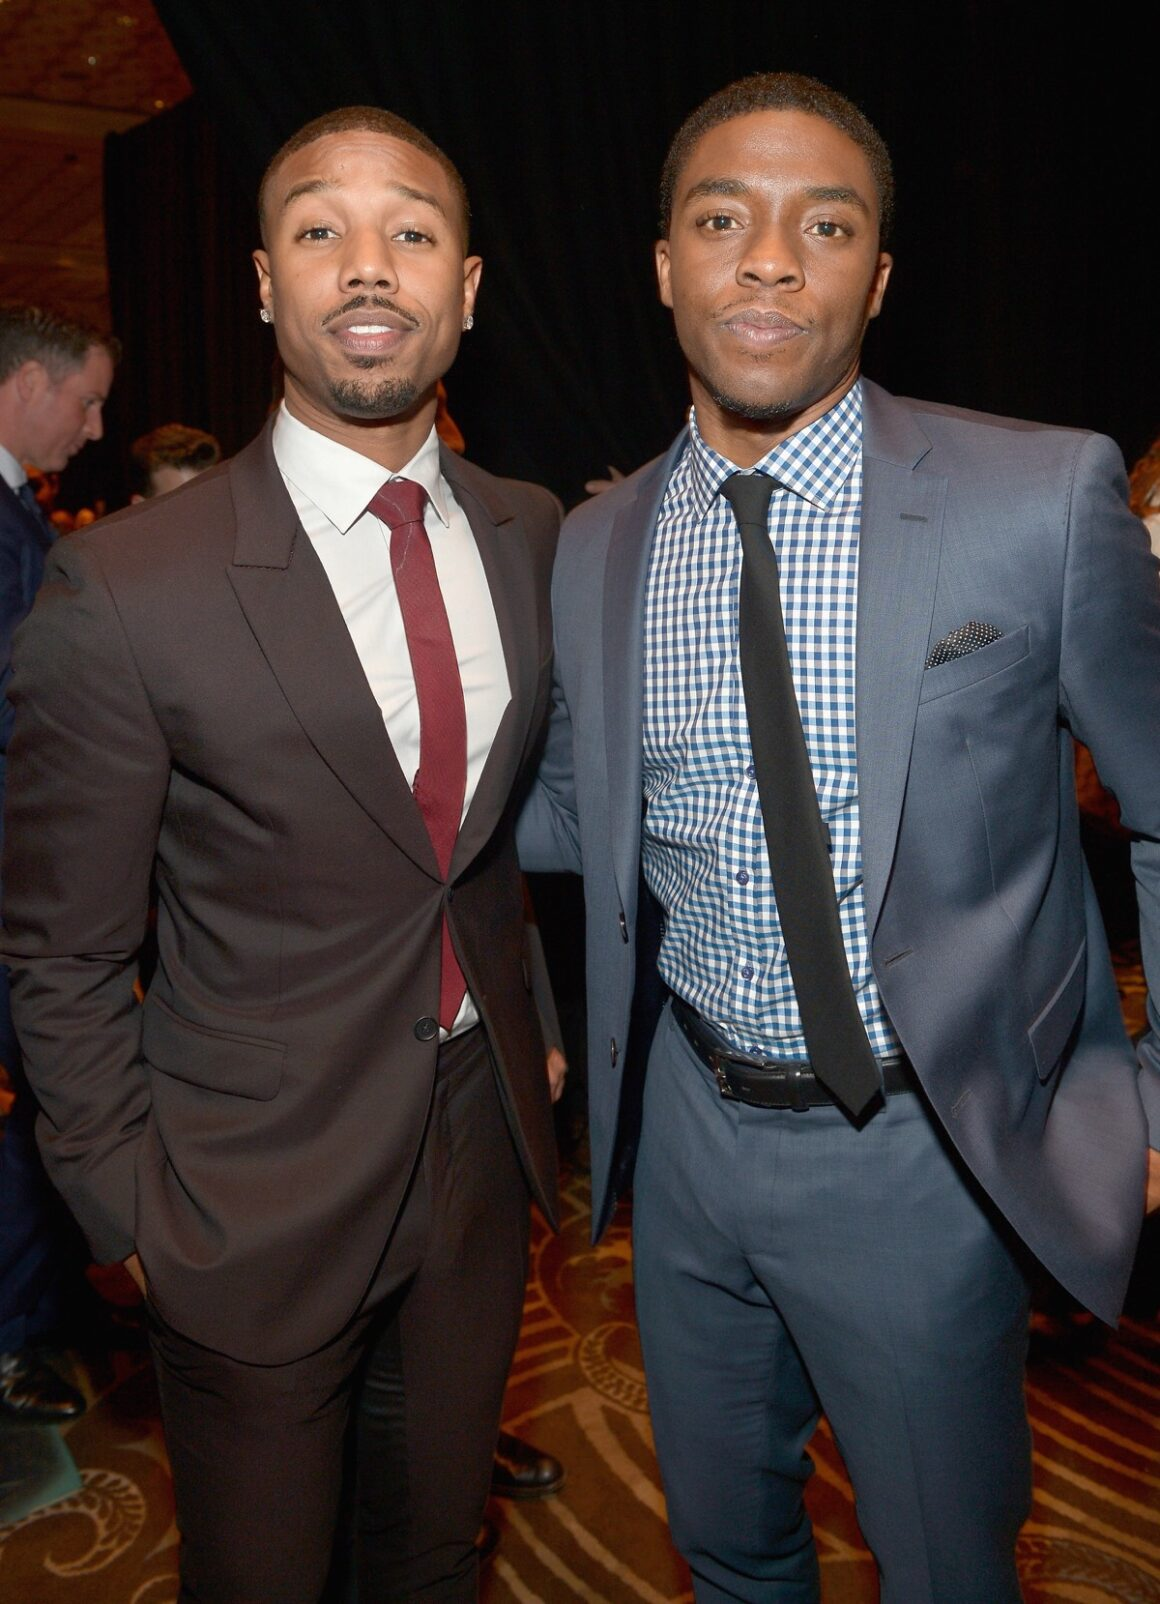 Chadwick Boseman and Michael B. Jordan CinemaCon 2014 - The CinemaCon Big Screen Achievement Awards Brought To You By The Coca-Cola Company